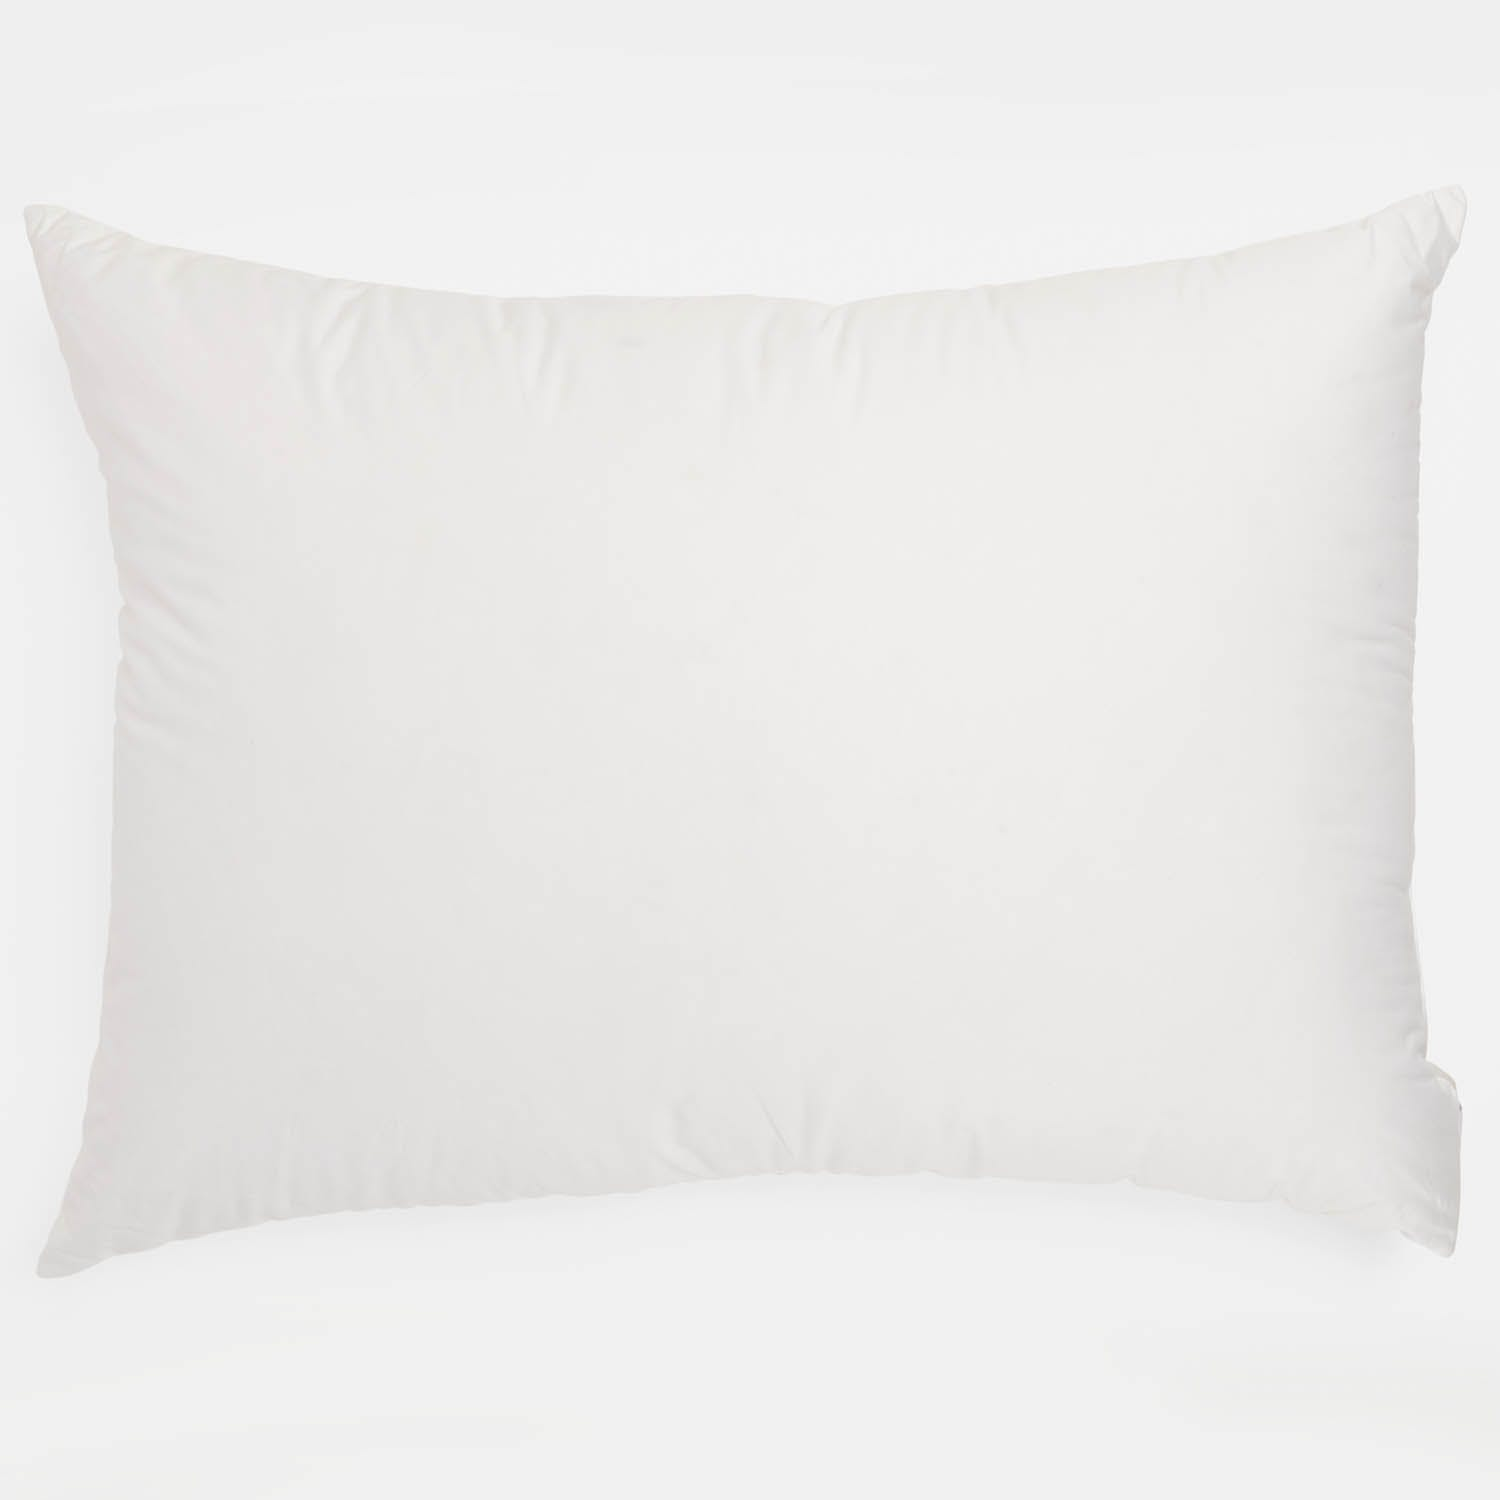 Product Image - Bliss Medium Pillow